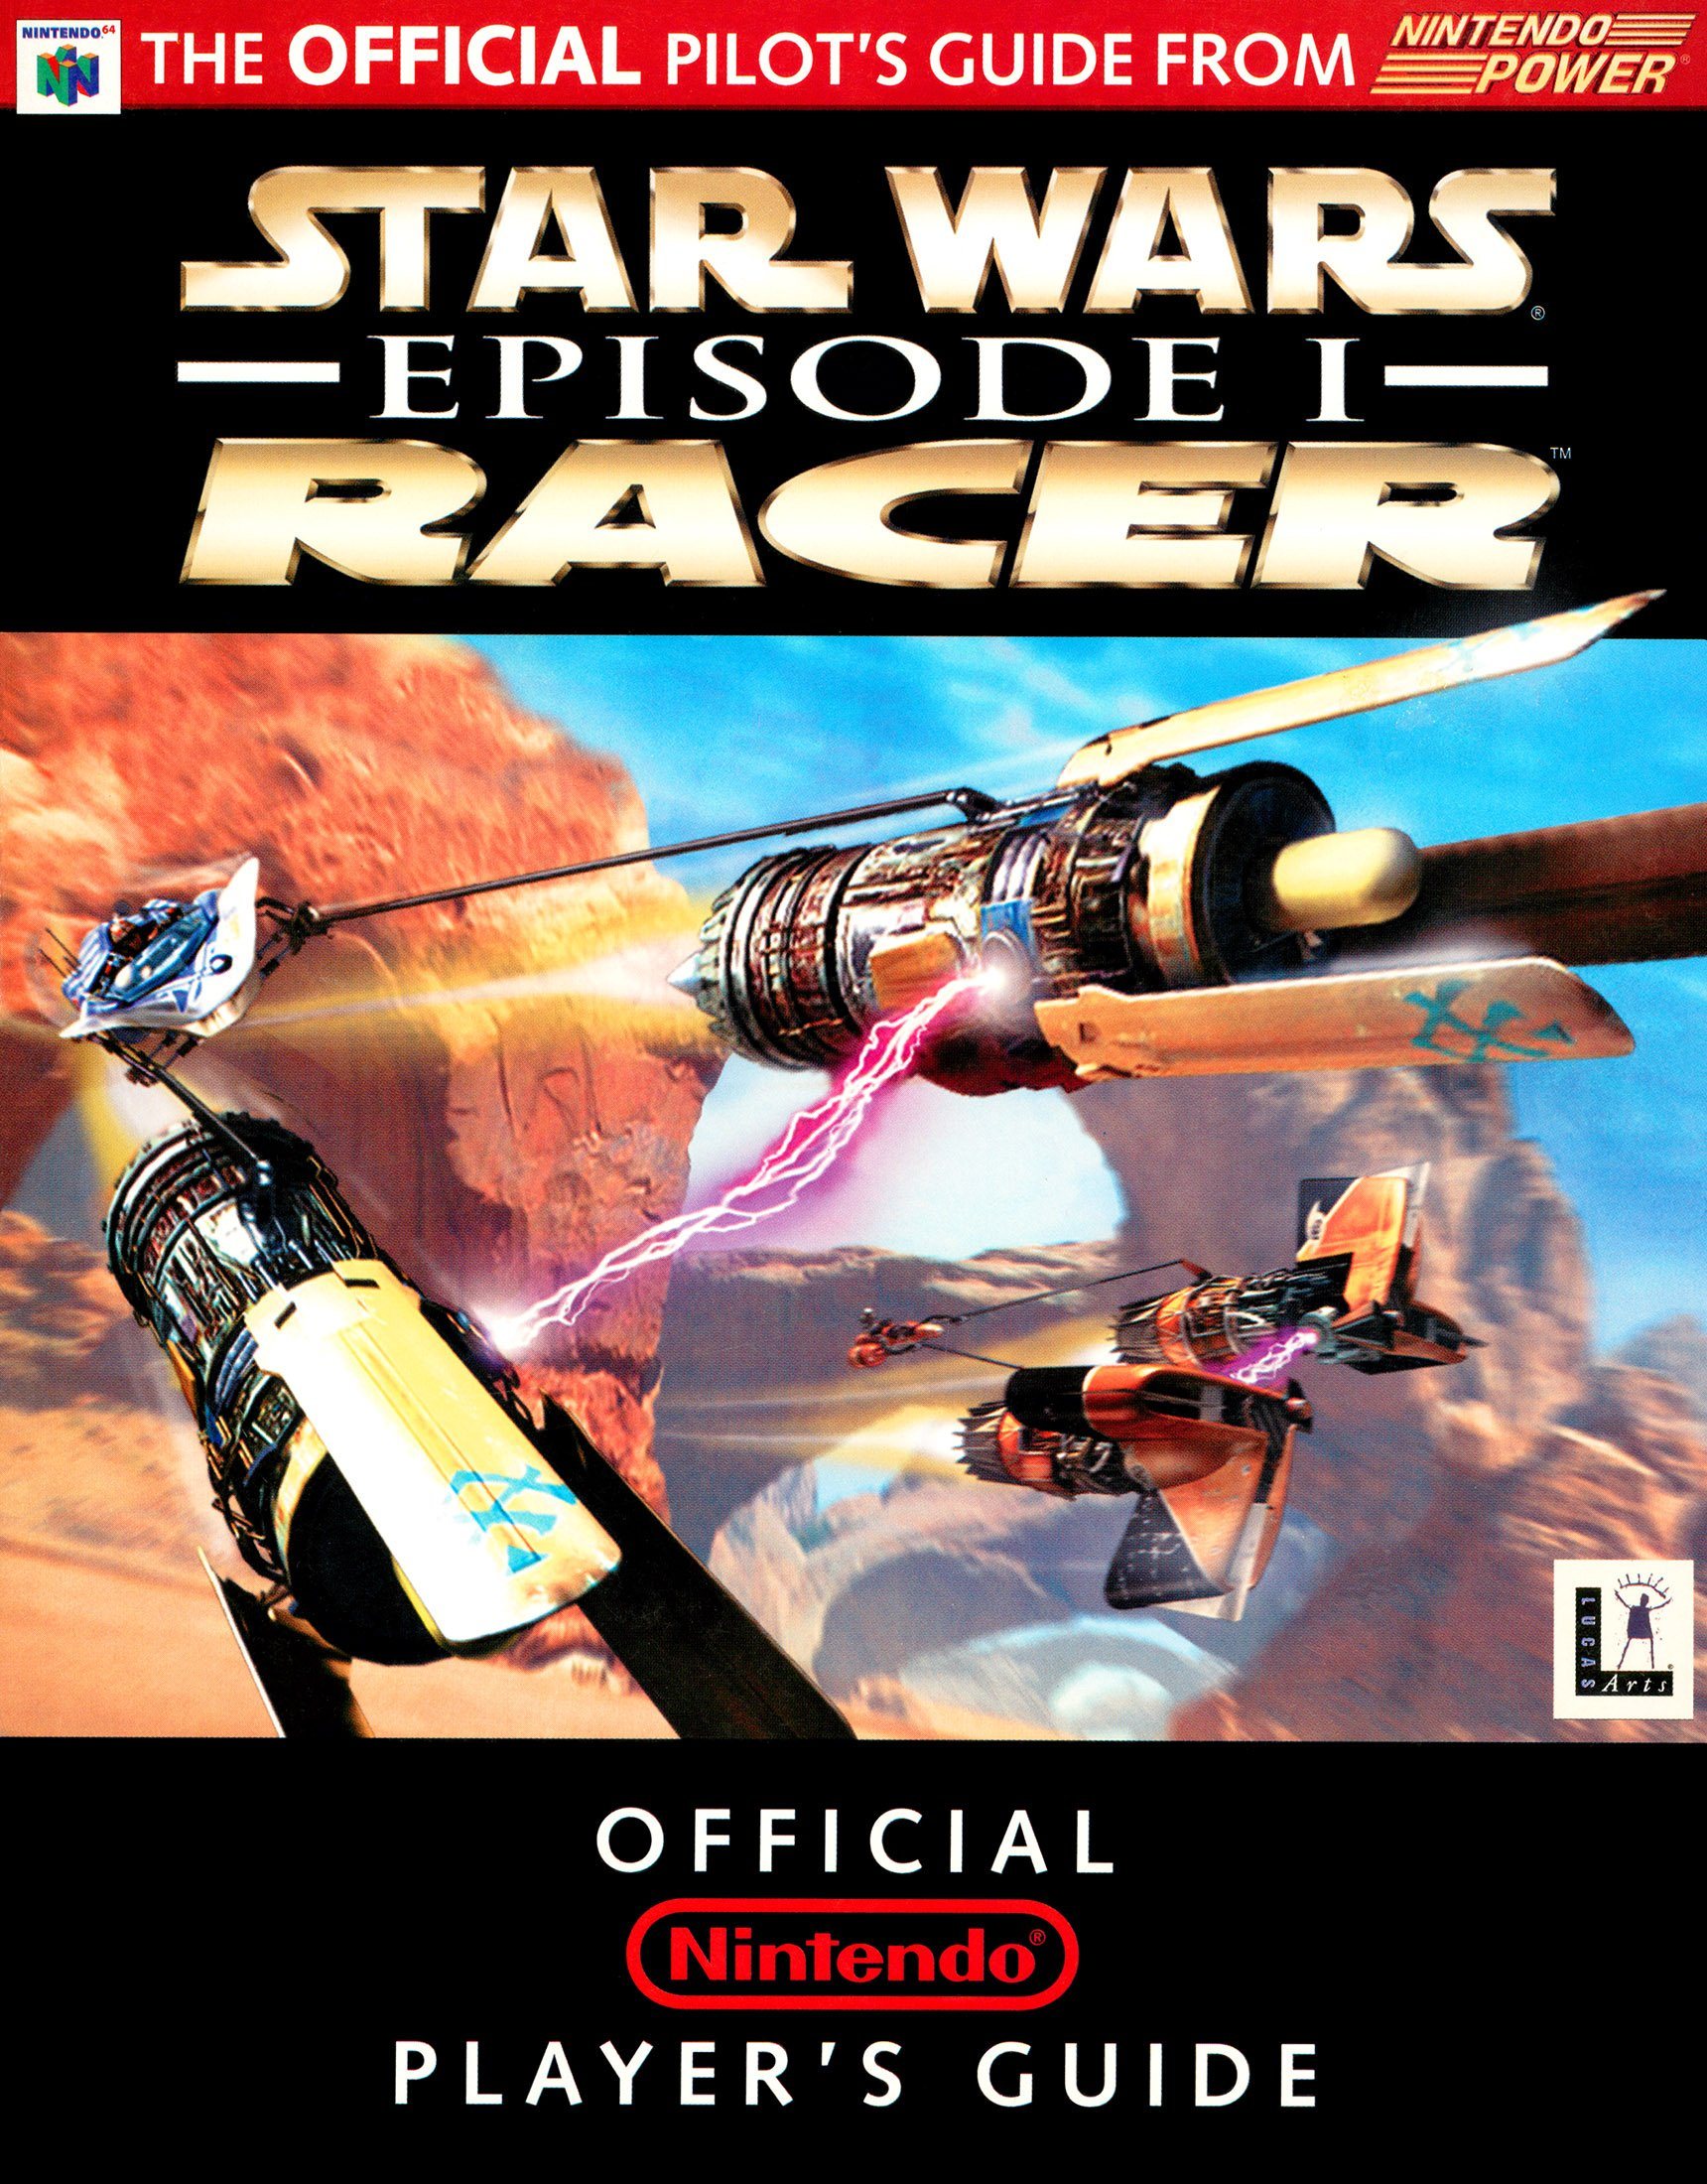 Star Wars: Episode I - Racer Player's Guide